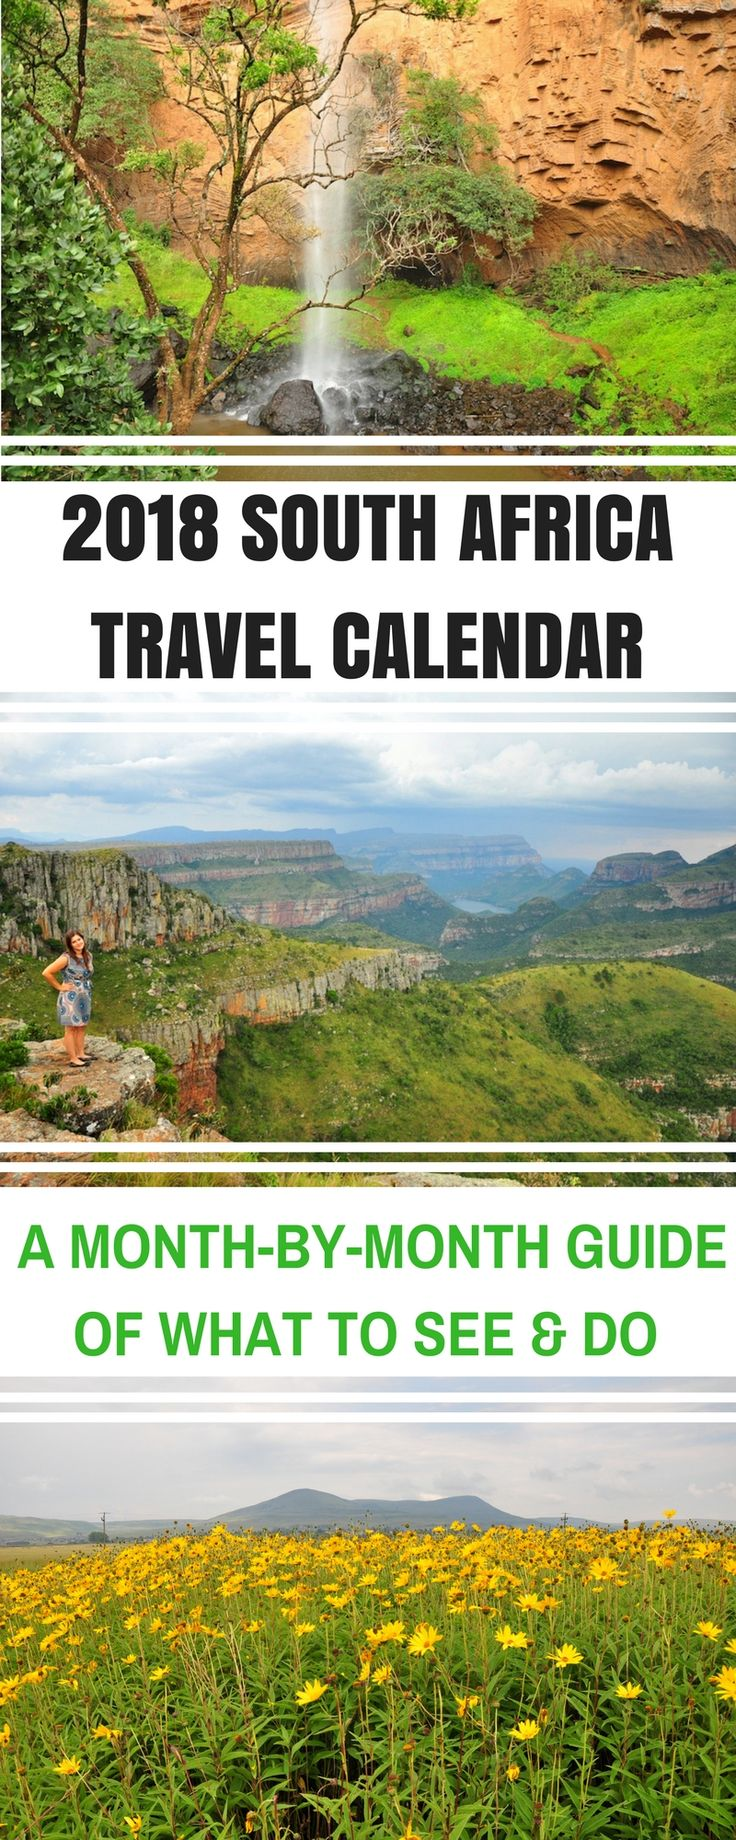 South Africa Travel Calender